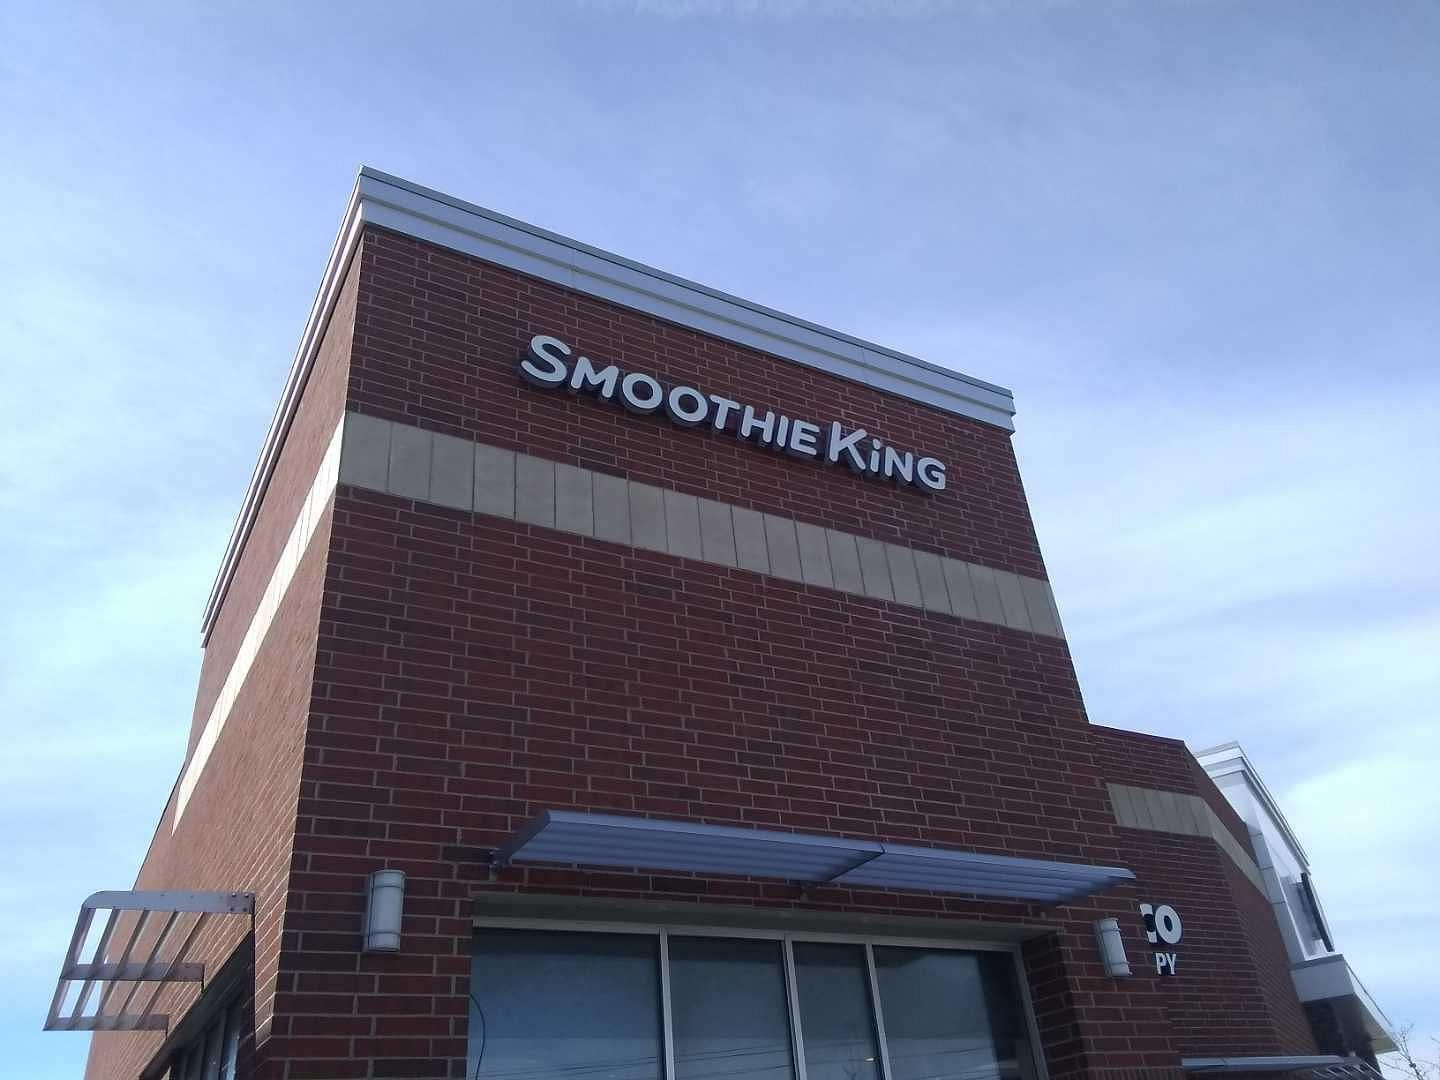 Smoothie King Flush Mounted channel letters